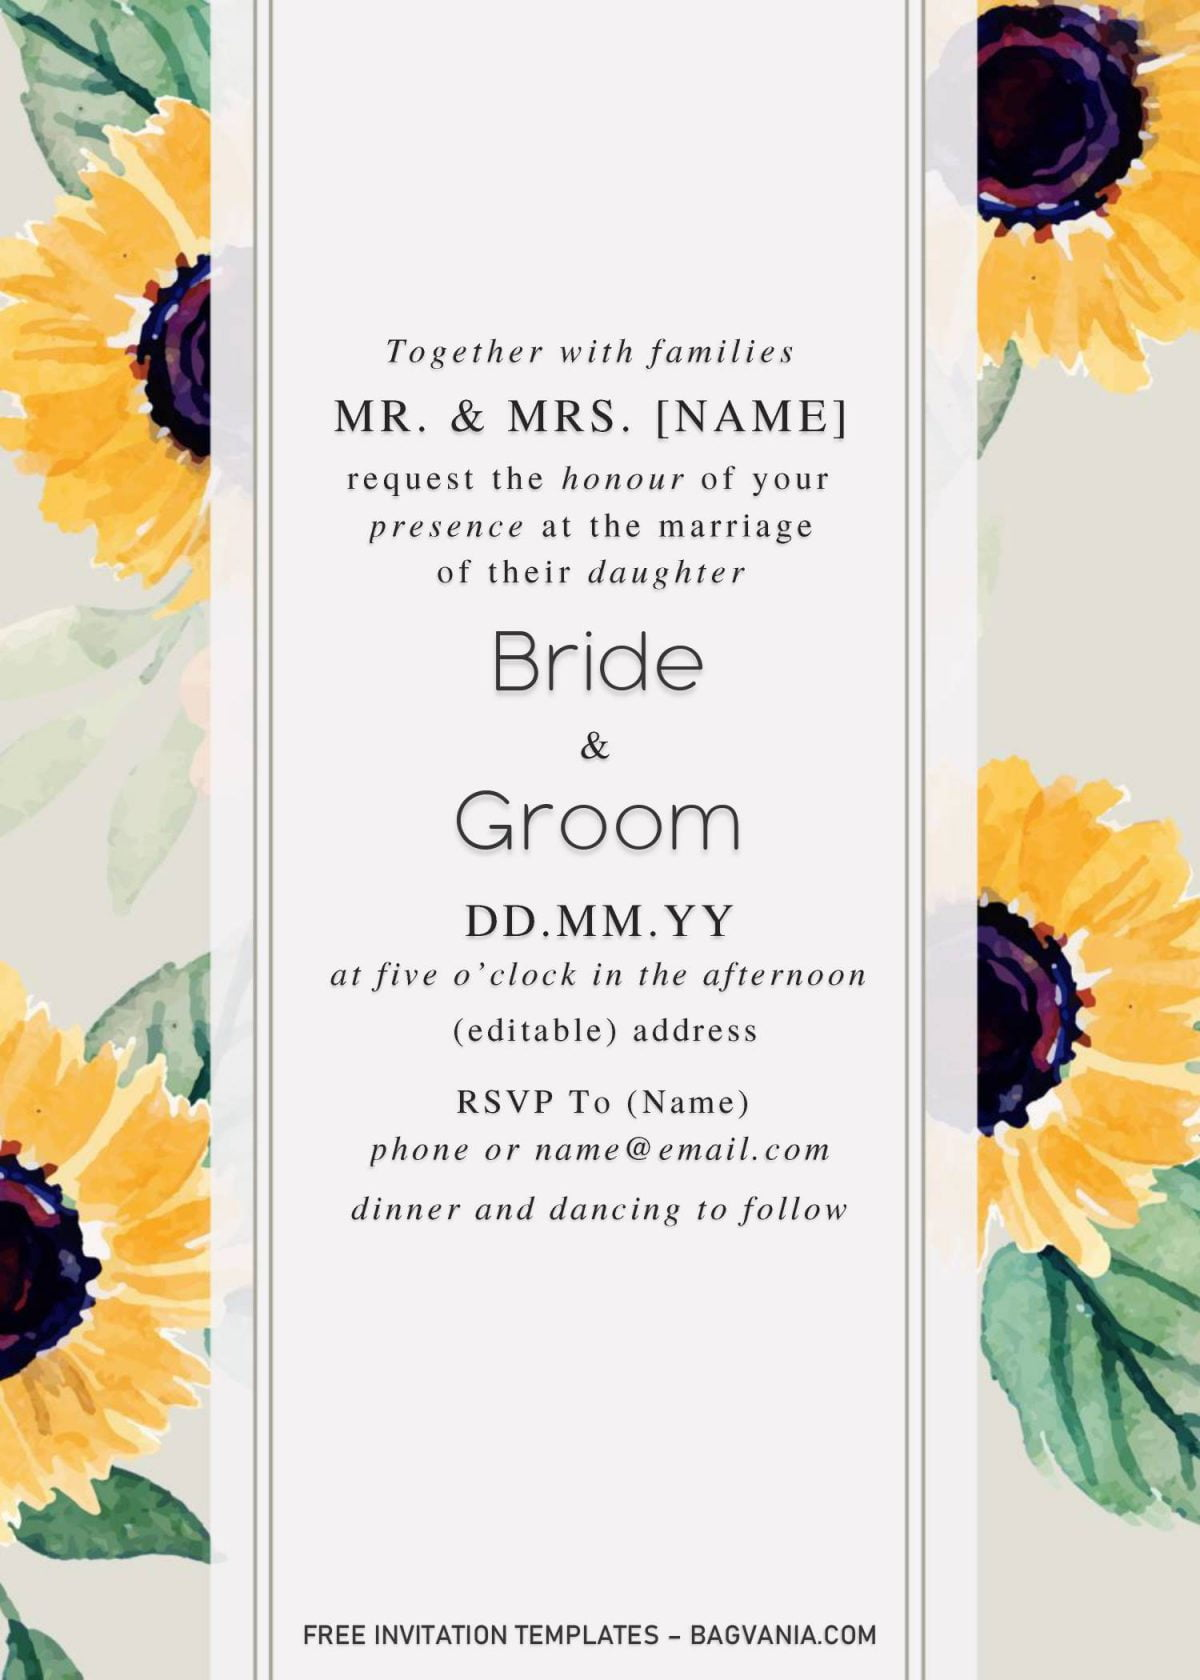 Sunflower Wedding Invitation Templates - Editable With Microsoft Word and has